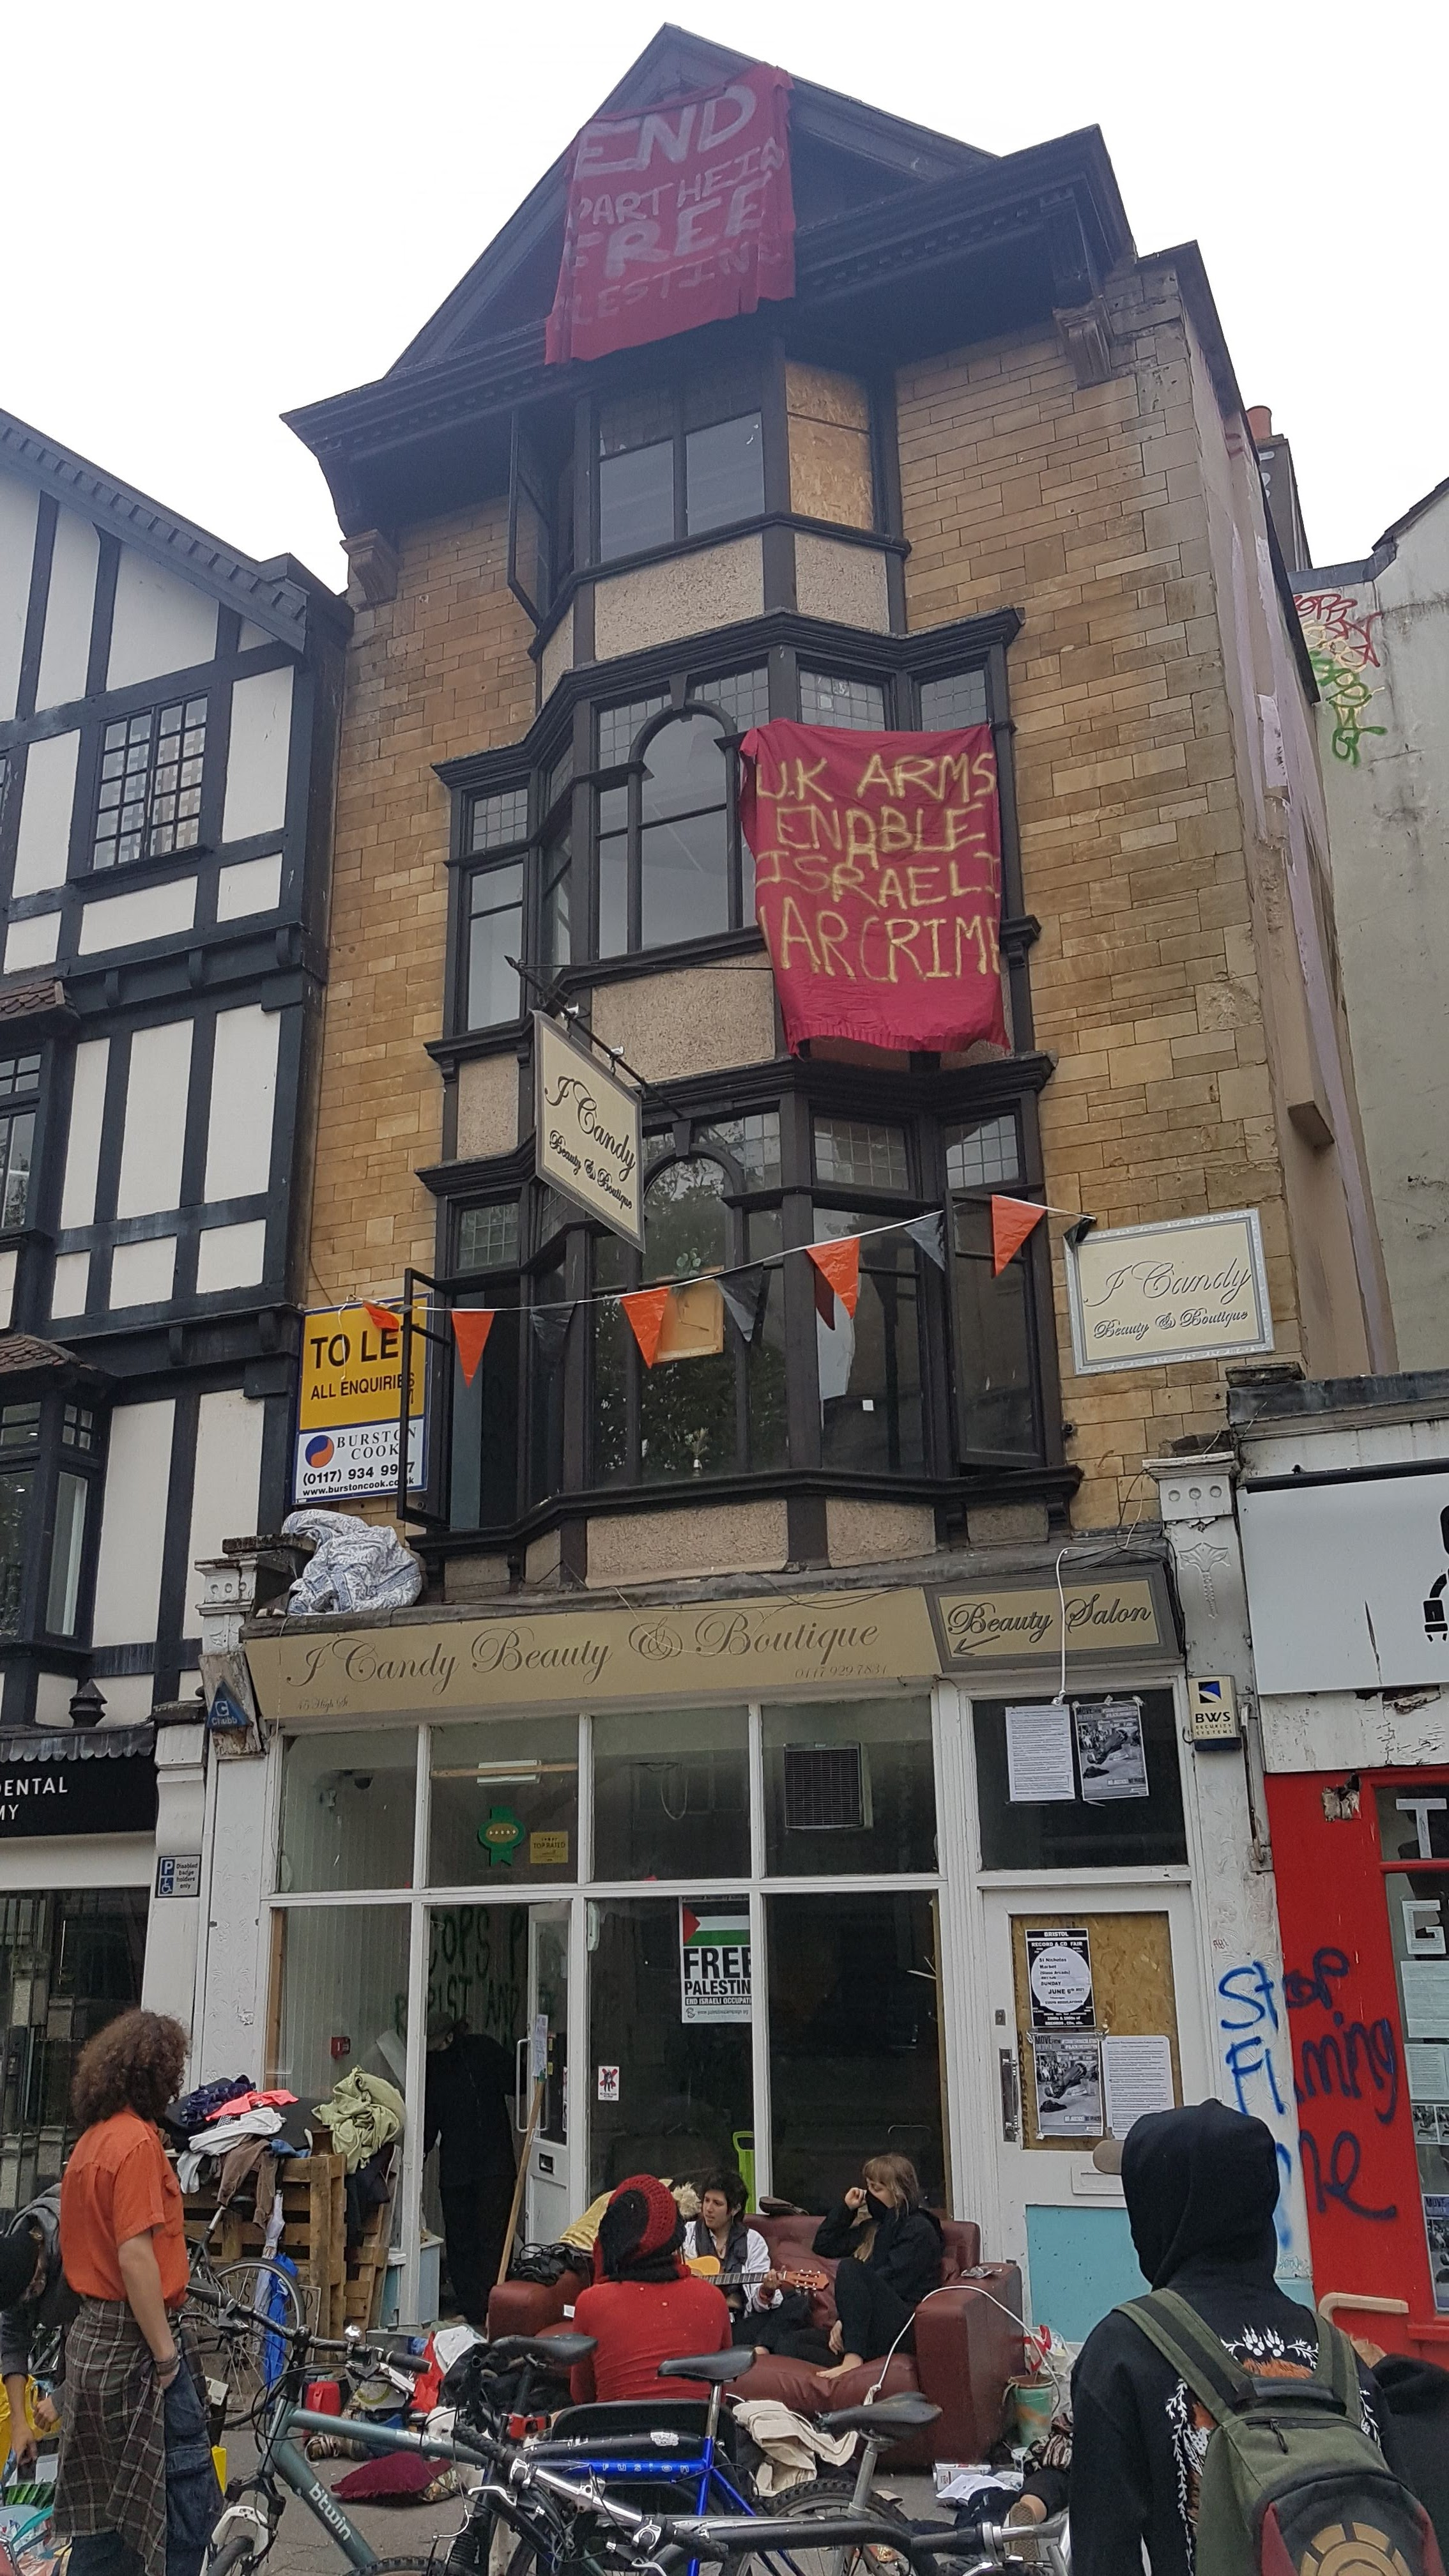 Five-storey building with squatters sat outside. There are banners hanging from the windows.